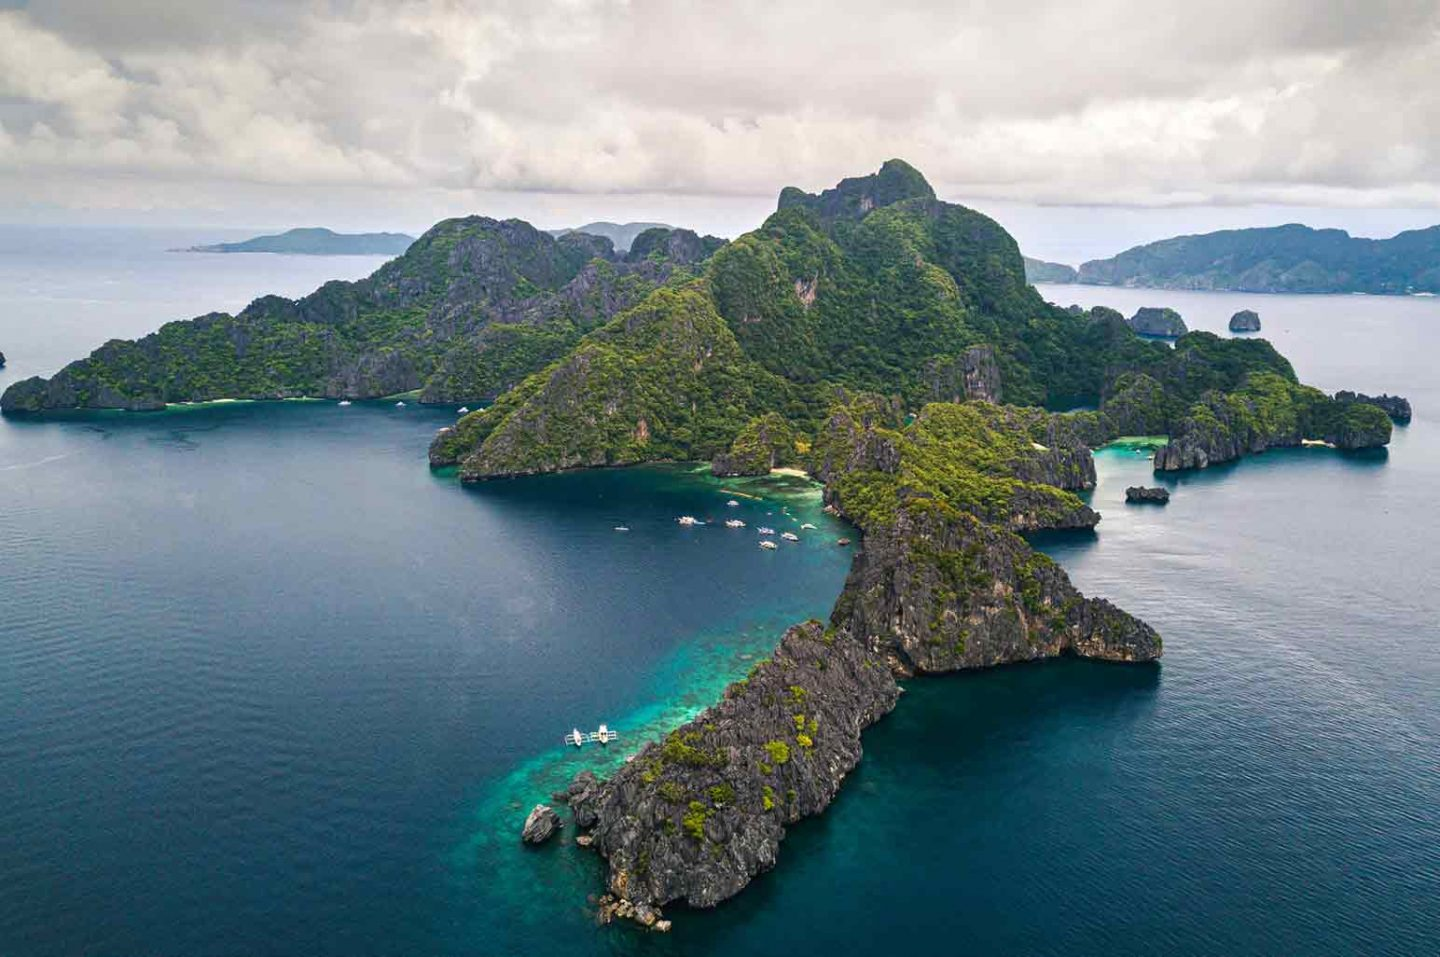 Why The Philippines Should Be on Your Bucket List